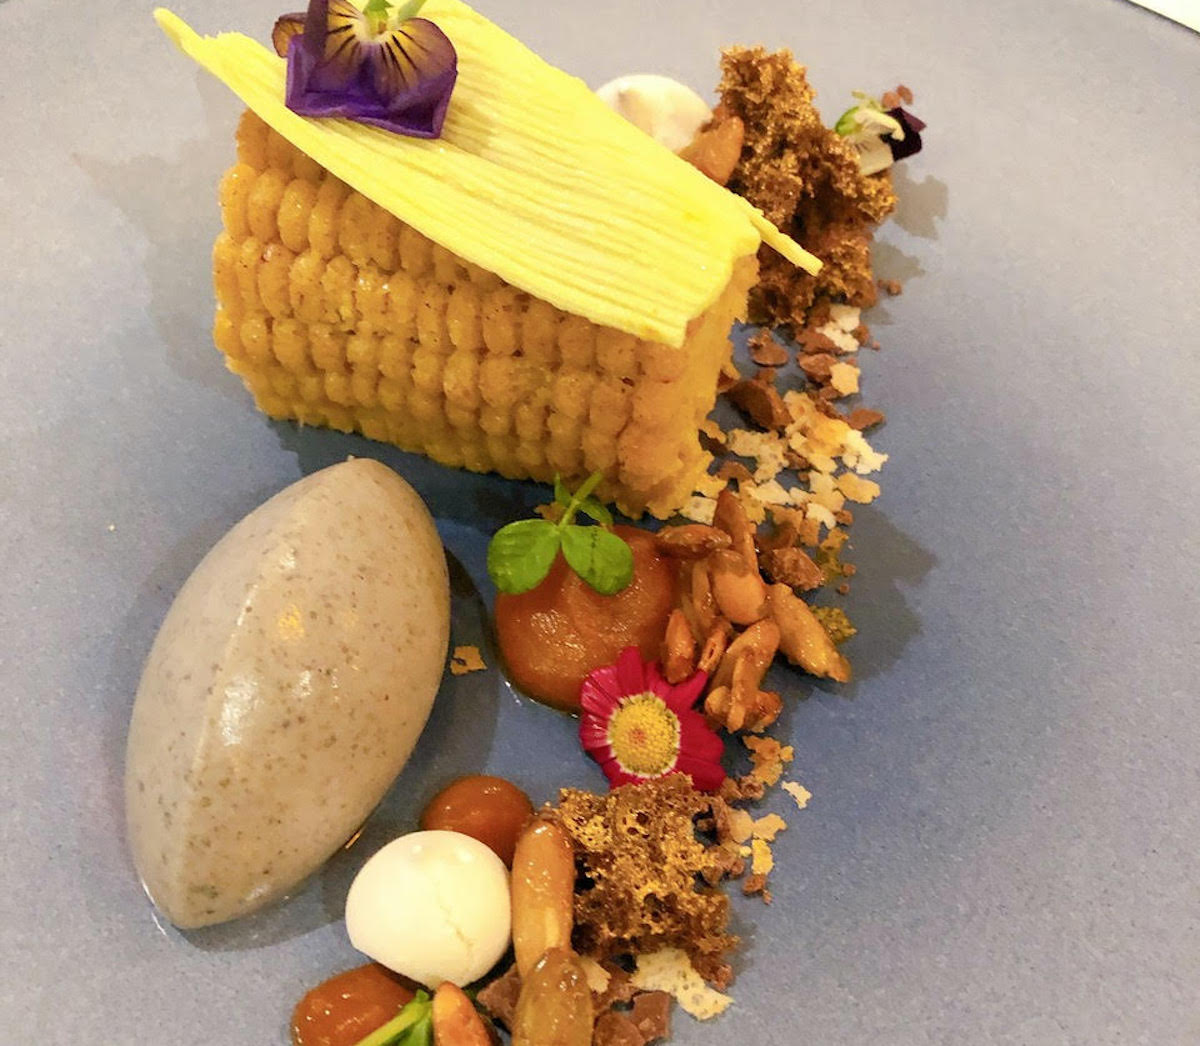 La Milpa (The Cornfield) desert designed by pastry chef Alicia Guzman